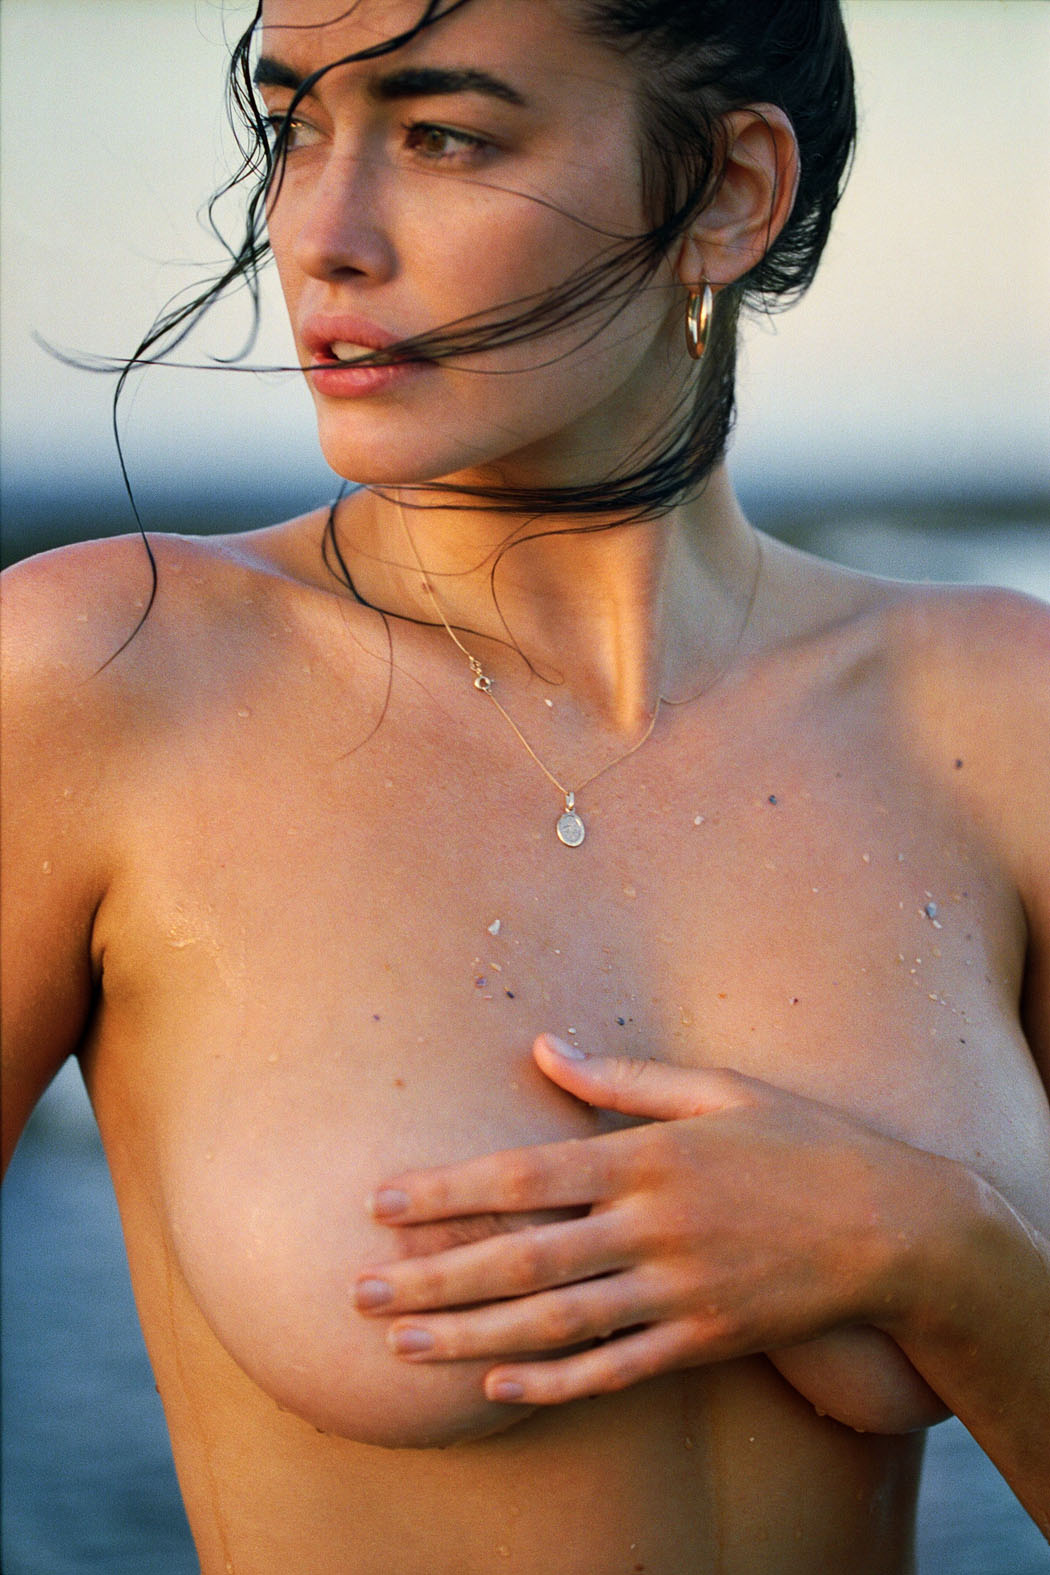 sarah-stephens-seaside-erotic-photo-by-cameron-mackie-28